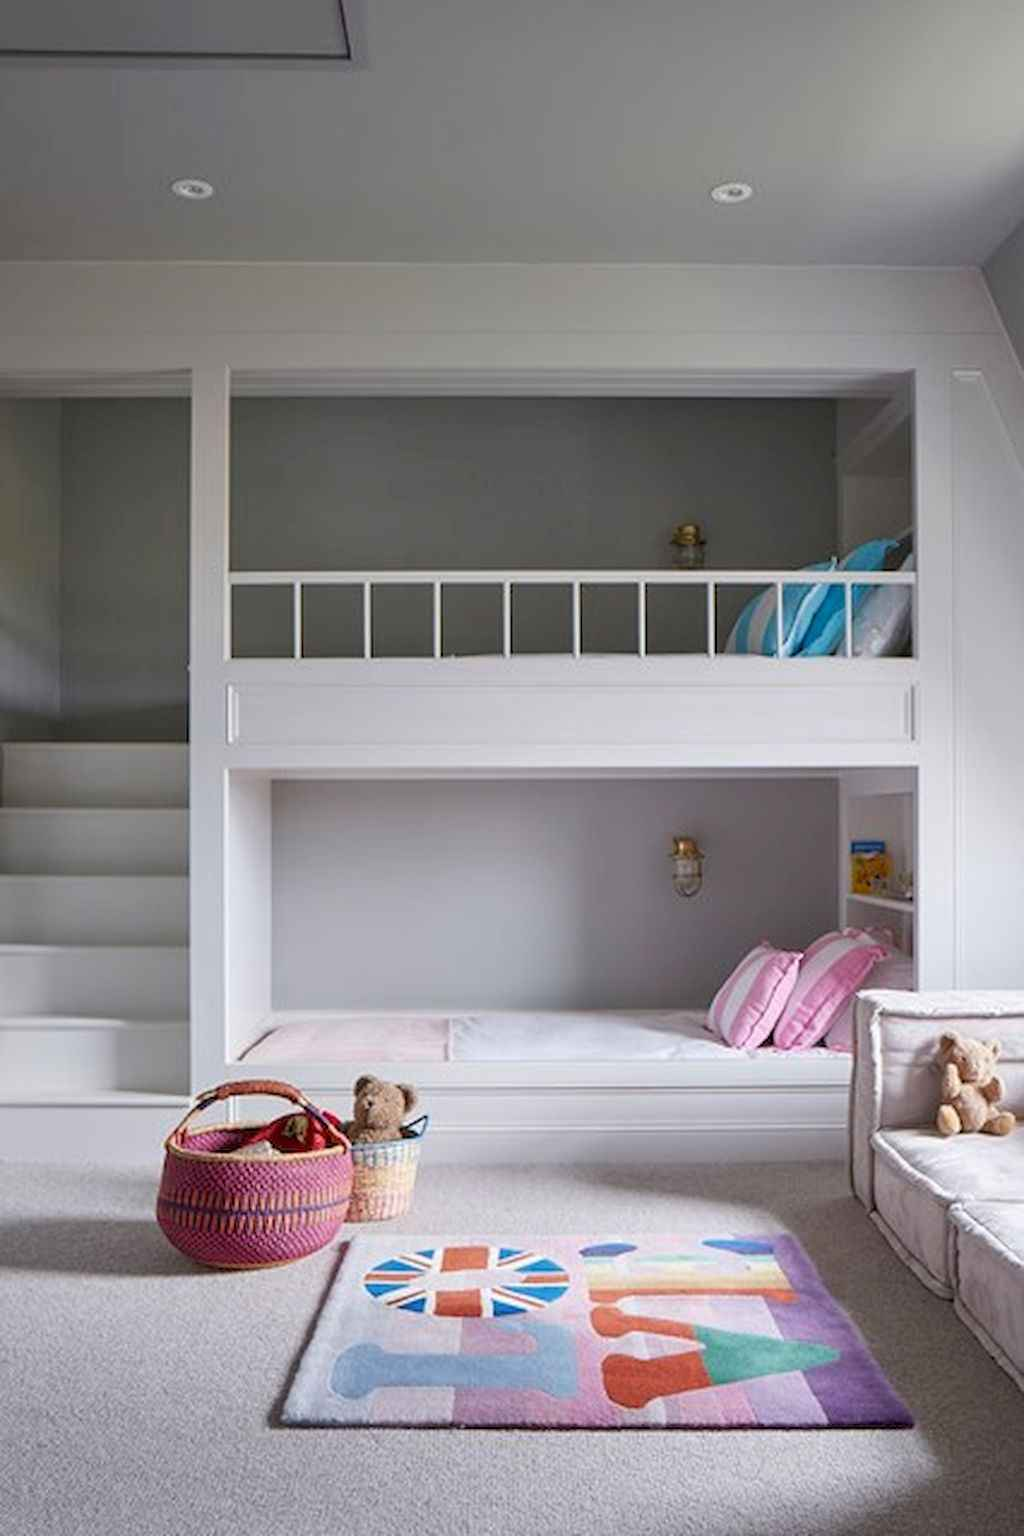 Awesome ideas bedroom for kids (38)